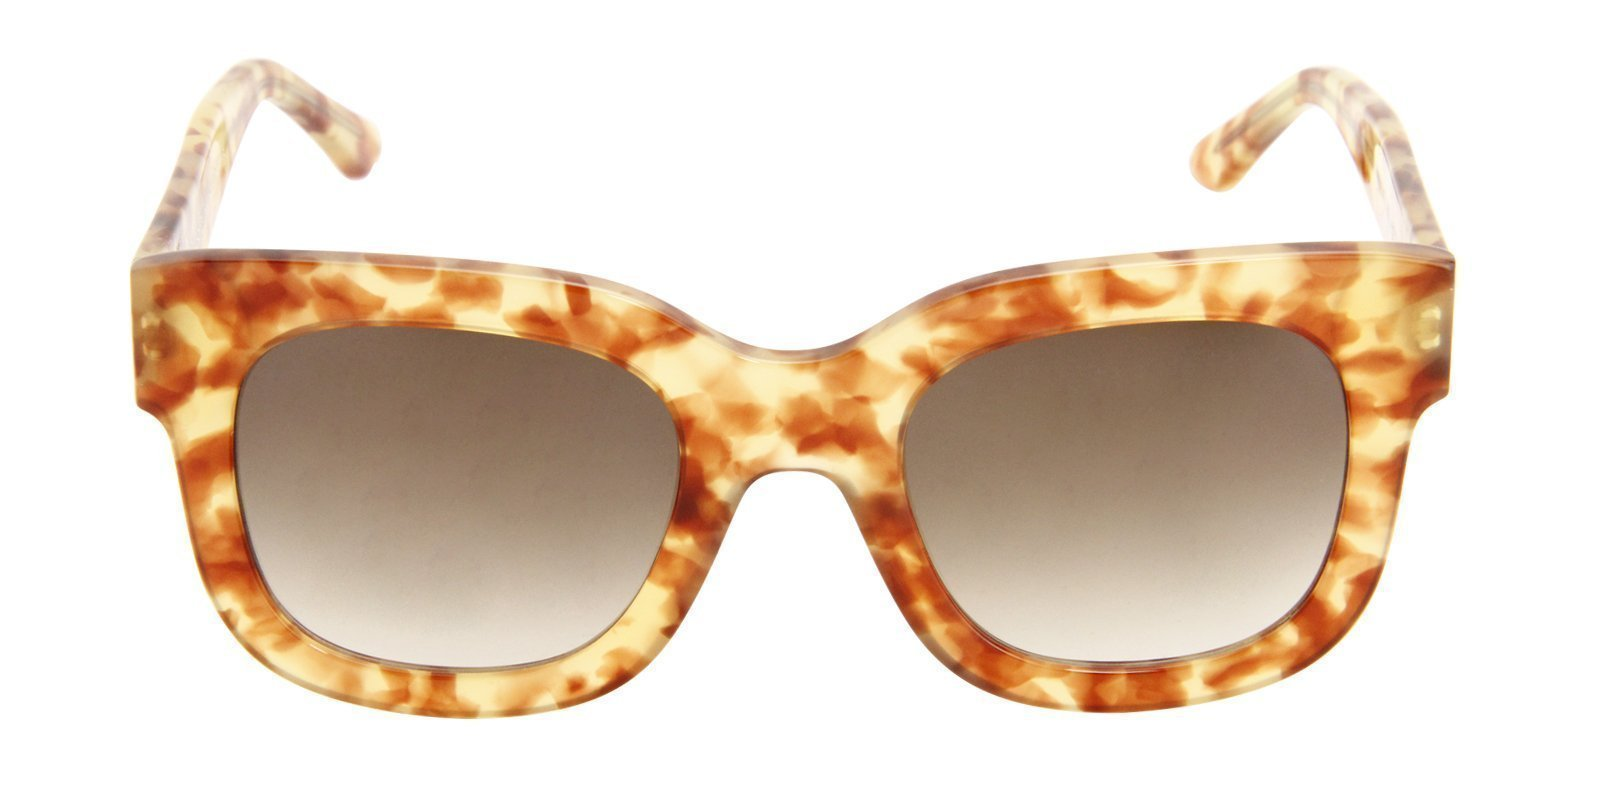 Thierry Lasry - Dominaty Tortoise Rectangular Women Sunglasses - 52mm-Sunglasses-Designer Eyes